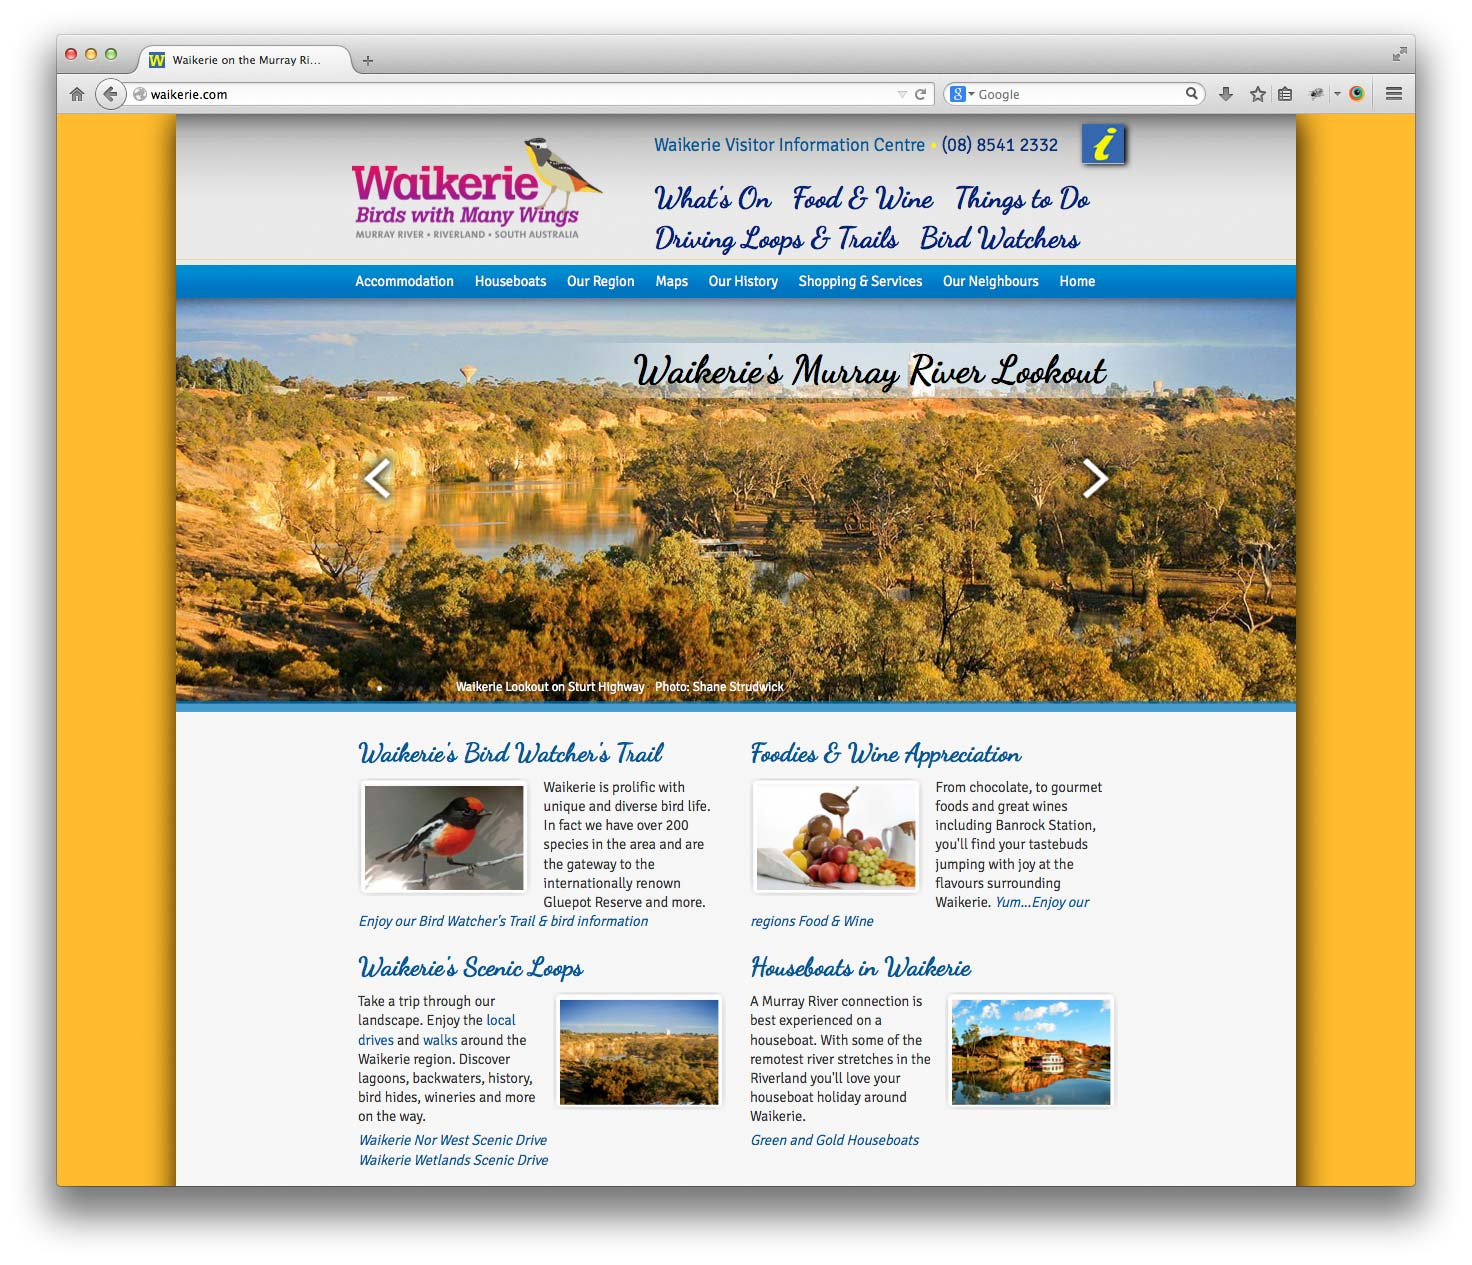 Waikerie.com website in the Riverland, South Australia